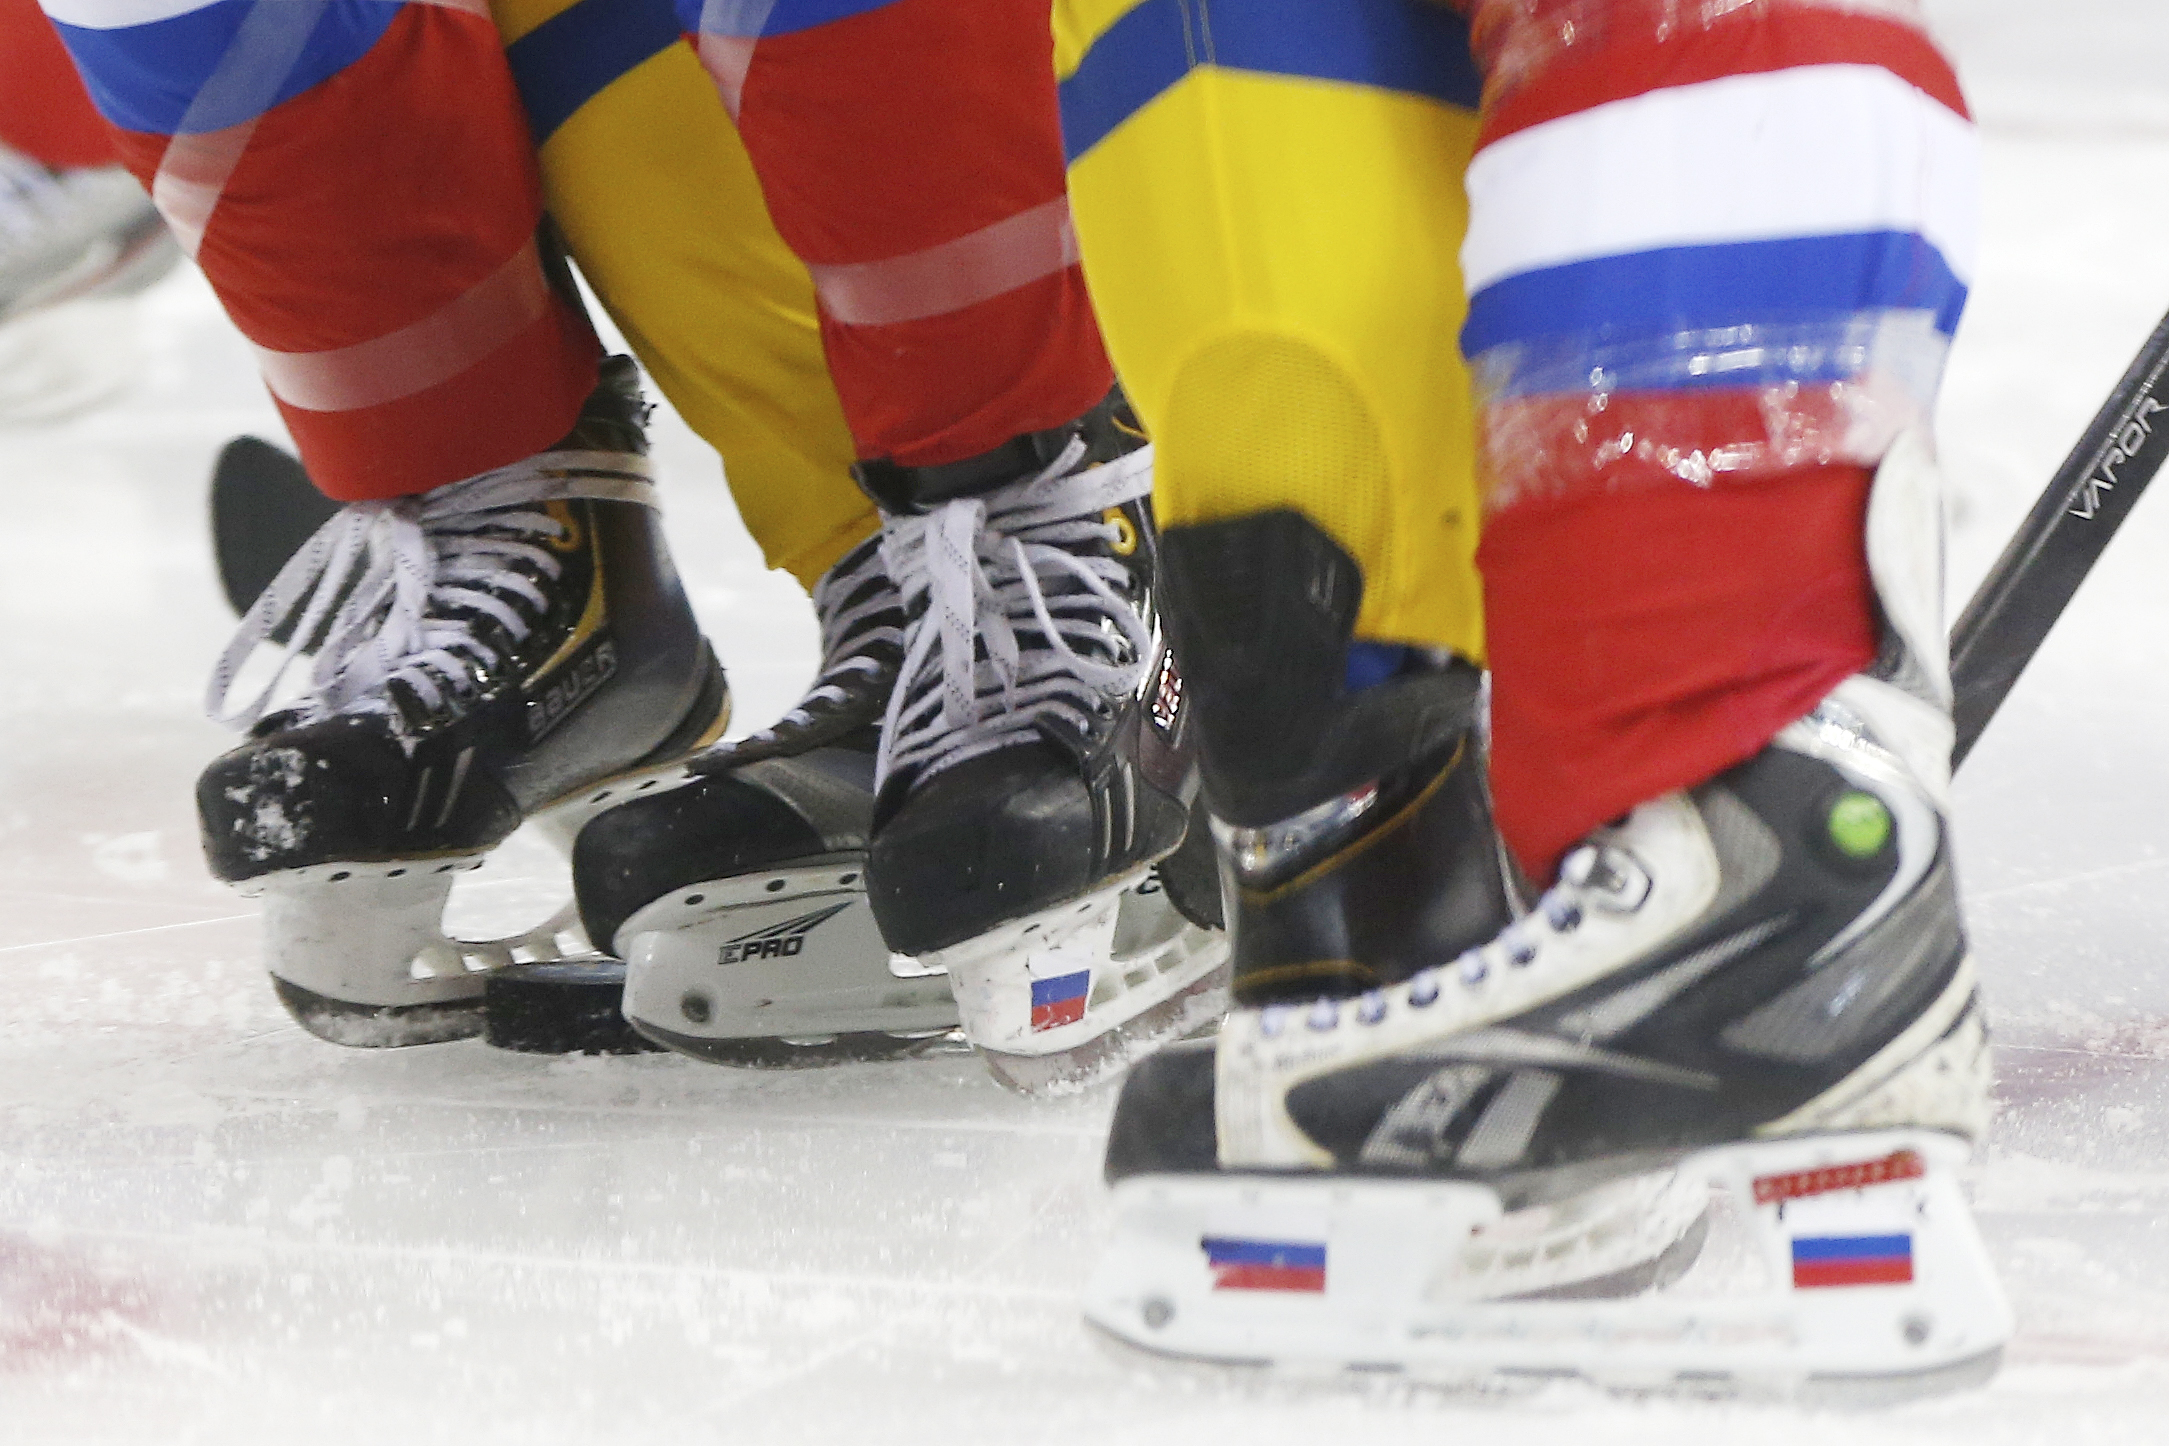 Members of Team Russian and Team Sweden line up for a face off during the 2014 Winter Olympics women's ice hockey game at Shayba Arena, Thursday, Feb. 13, 2014, in Sochi, Russia. (AP Photo/Petr David Josek)